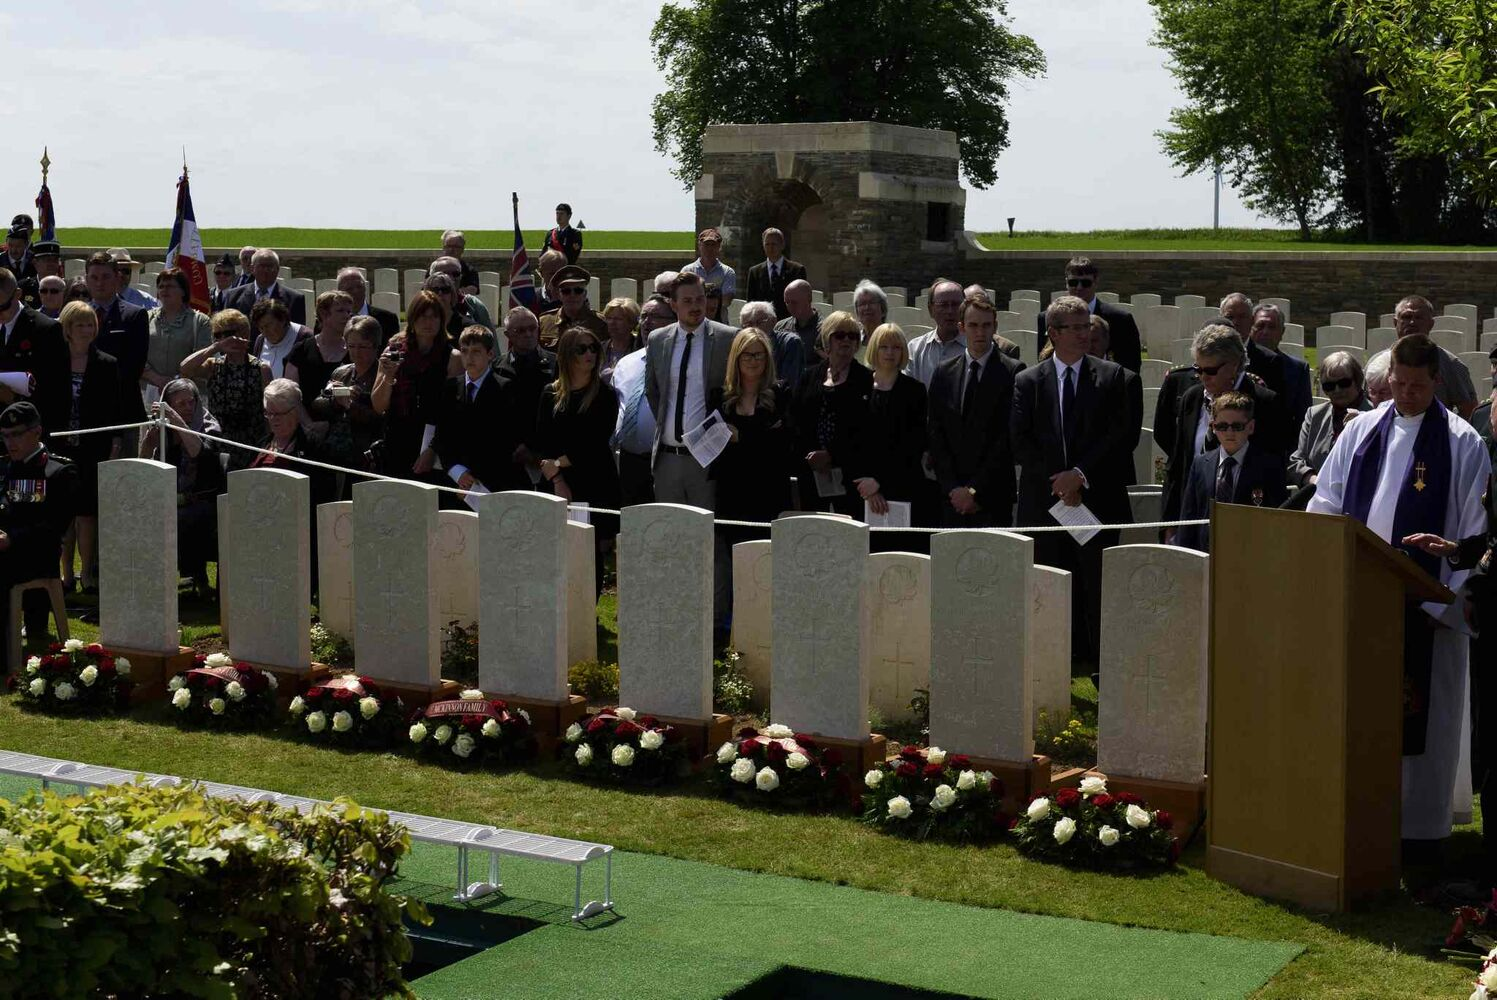 Flowers are laid at the headstones of eight Canadian First World War soldiers from the 78th Battalion at the Caix British Cemetery in Caix, France on 13 May 2015 as part of the largest single find of unknown Canadian soldiers since the Canadian Armed Forces Casualty Identification program started in 2006.